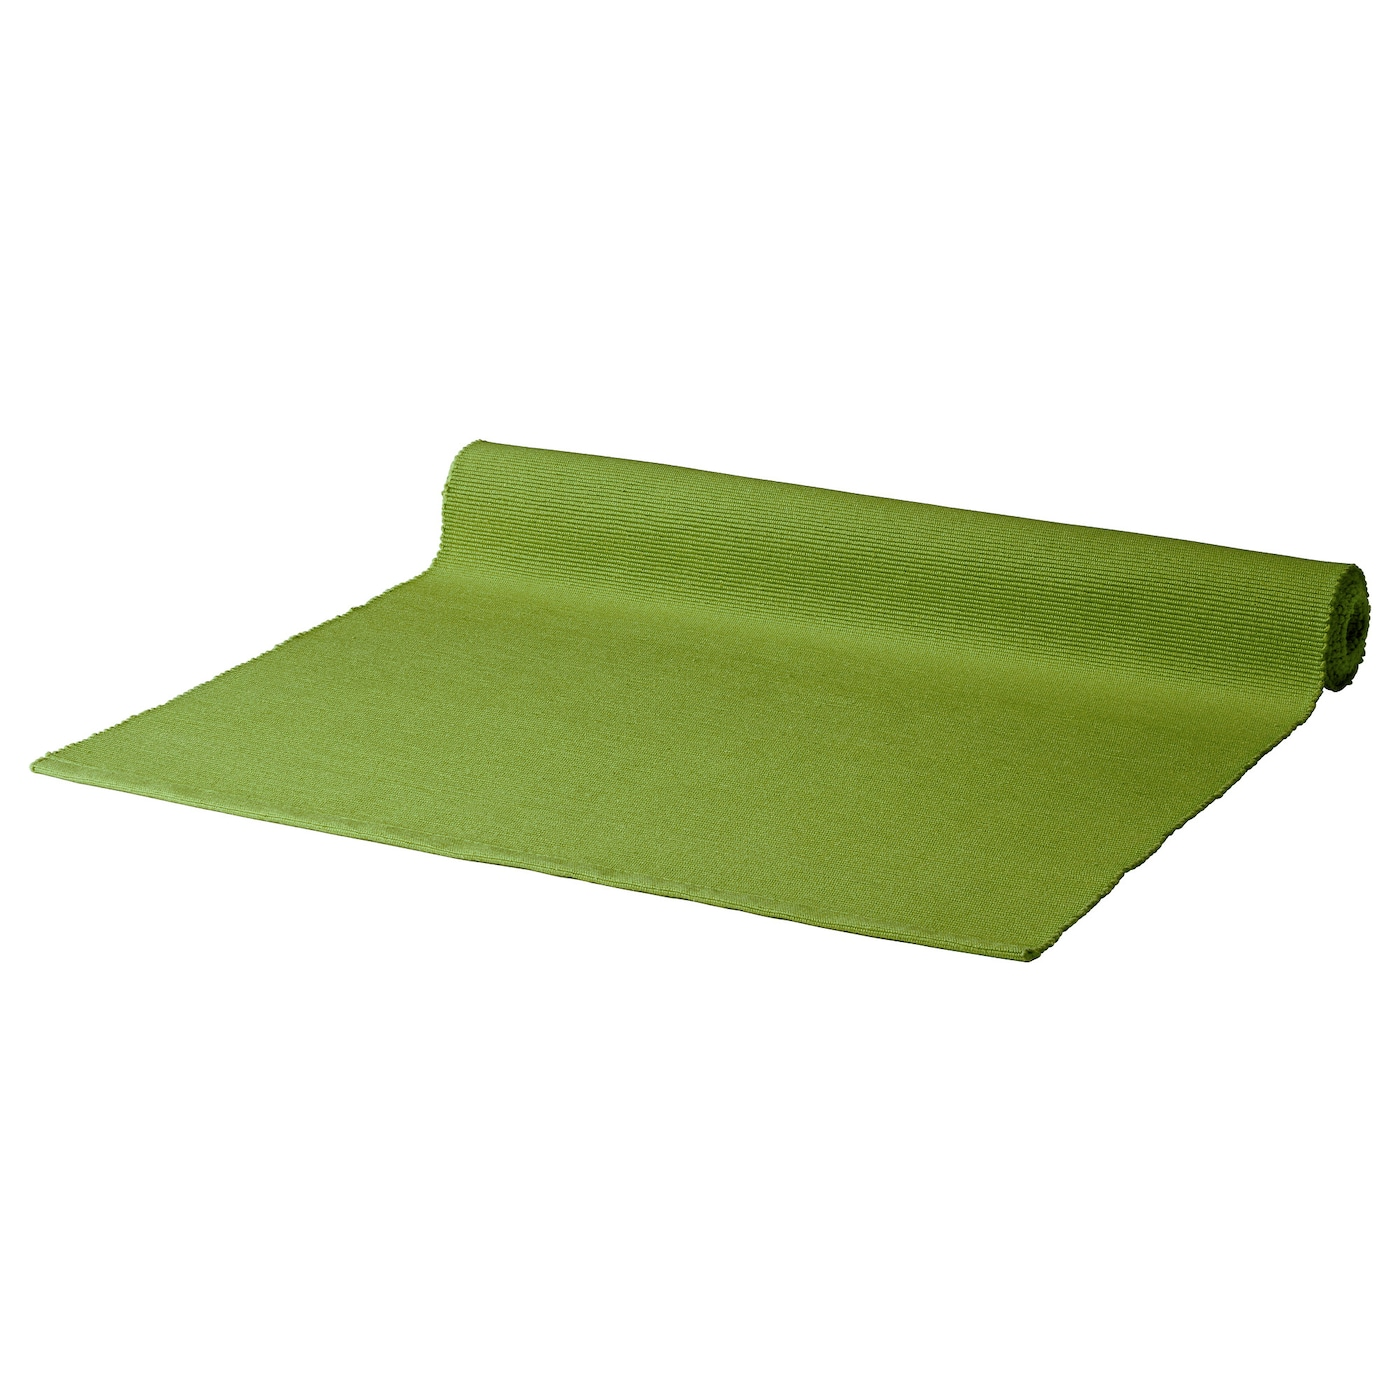 fantastisk paper napkin medium green 40x40 cm ikea. Black Bedroom Furniture Sets. Home Design Ideas